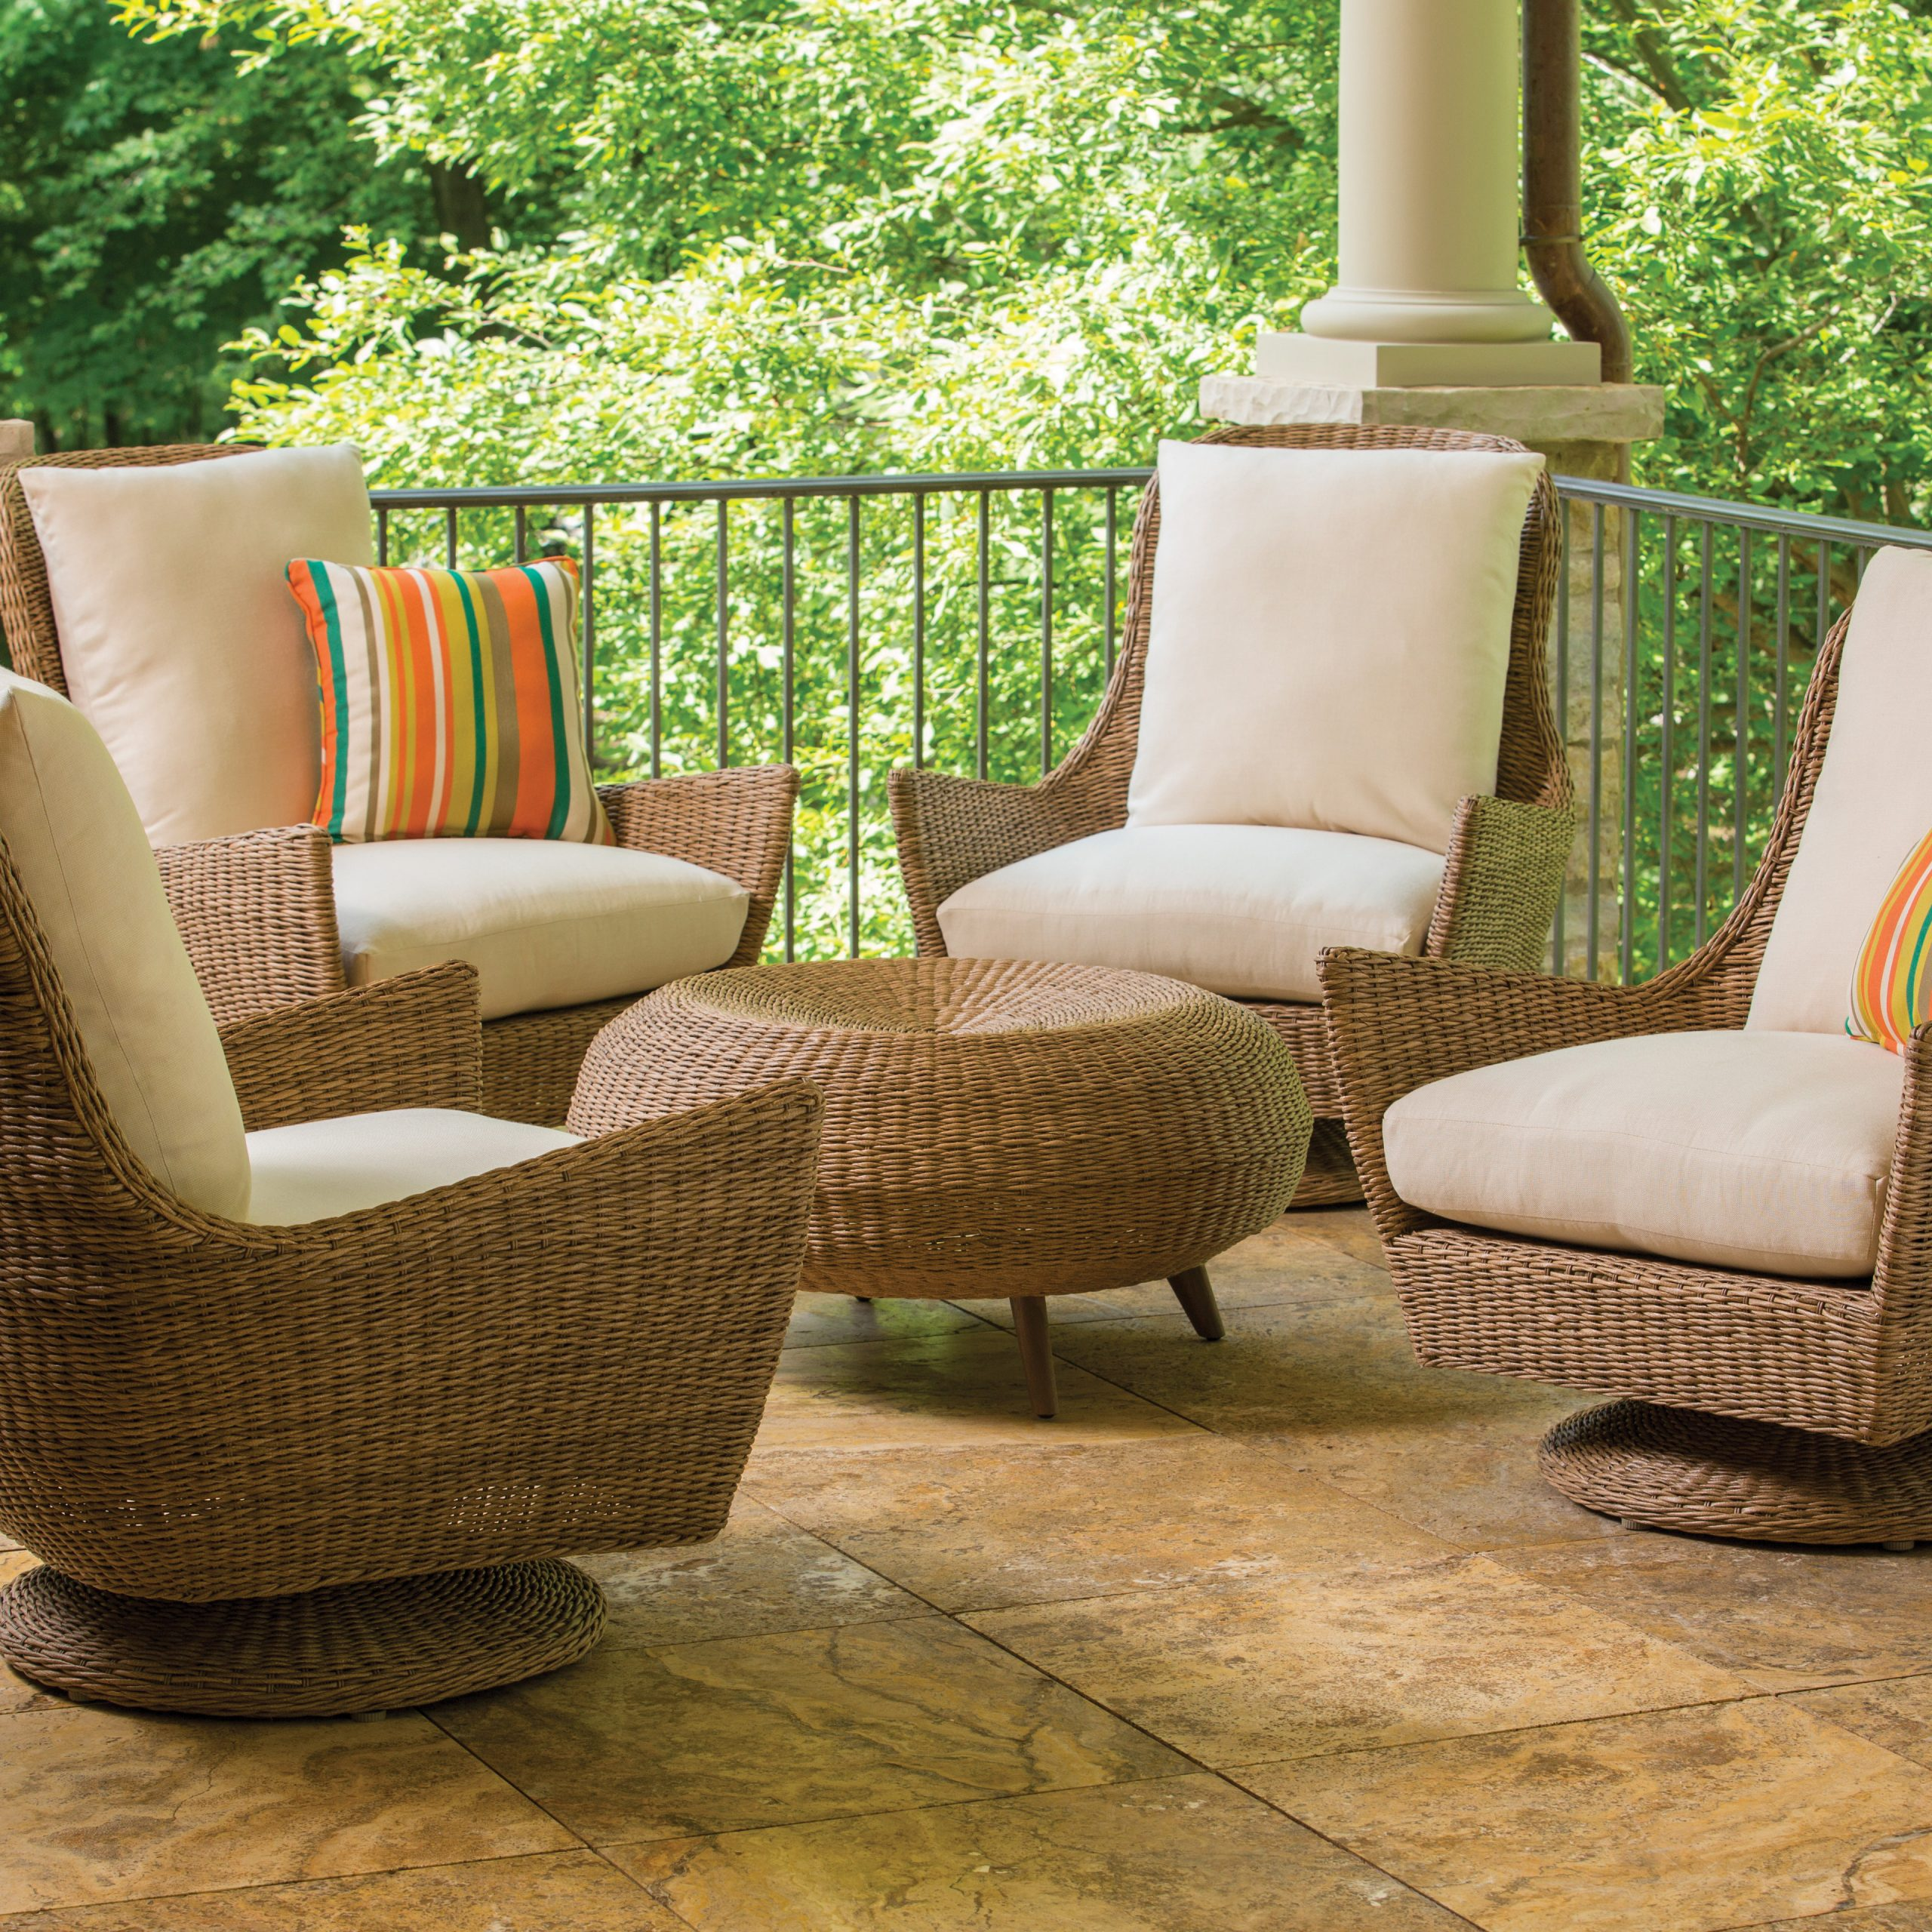 Item | Lloyd Flanders – Premium Outdoor Furniture In All Regarding Woven High Back Swivel Chairs (Image 12 of 25)